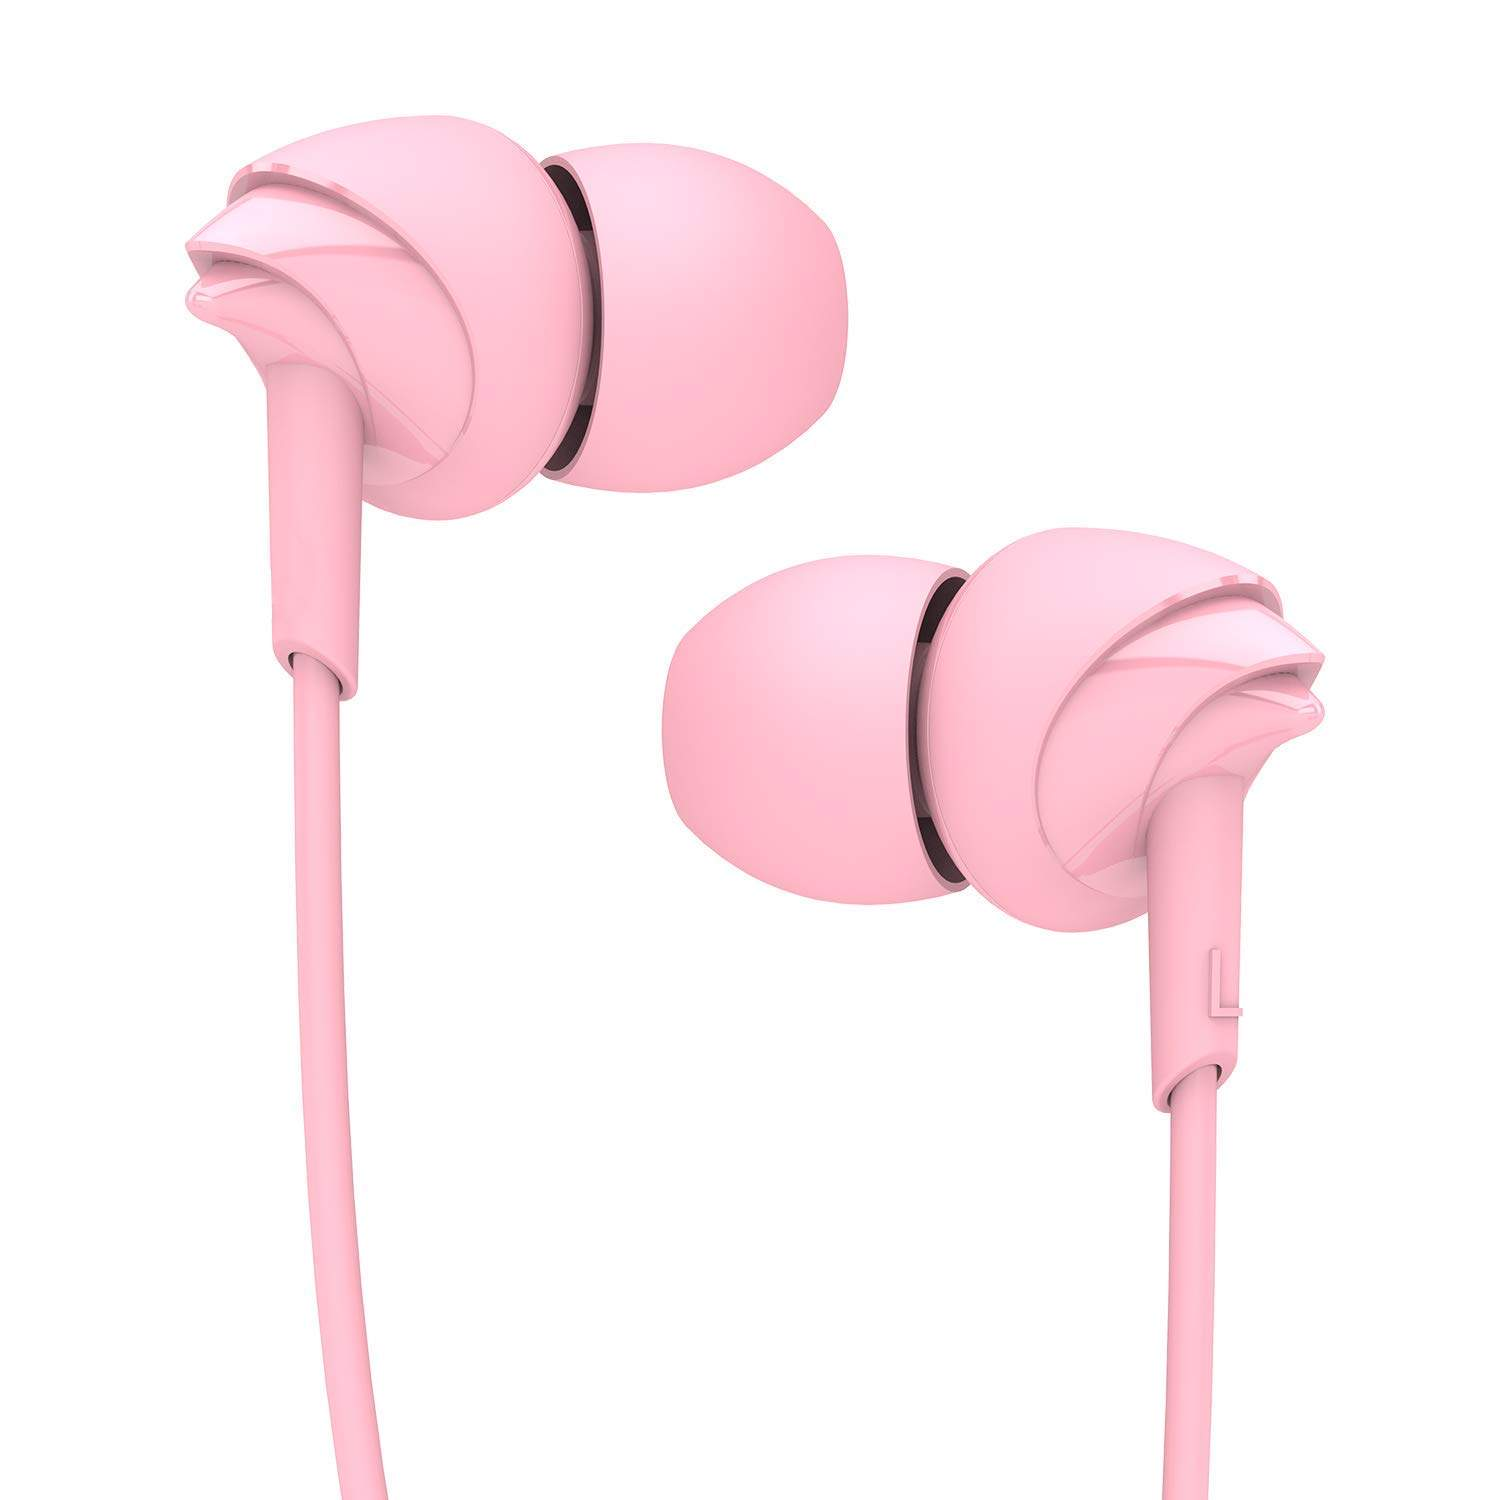 Boat BassHeads 100 Hawk Inspired Earphones With Mic (Taffy Pink)